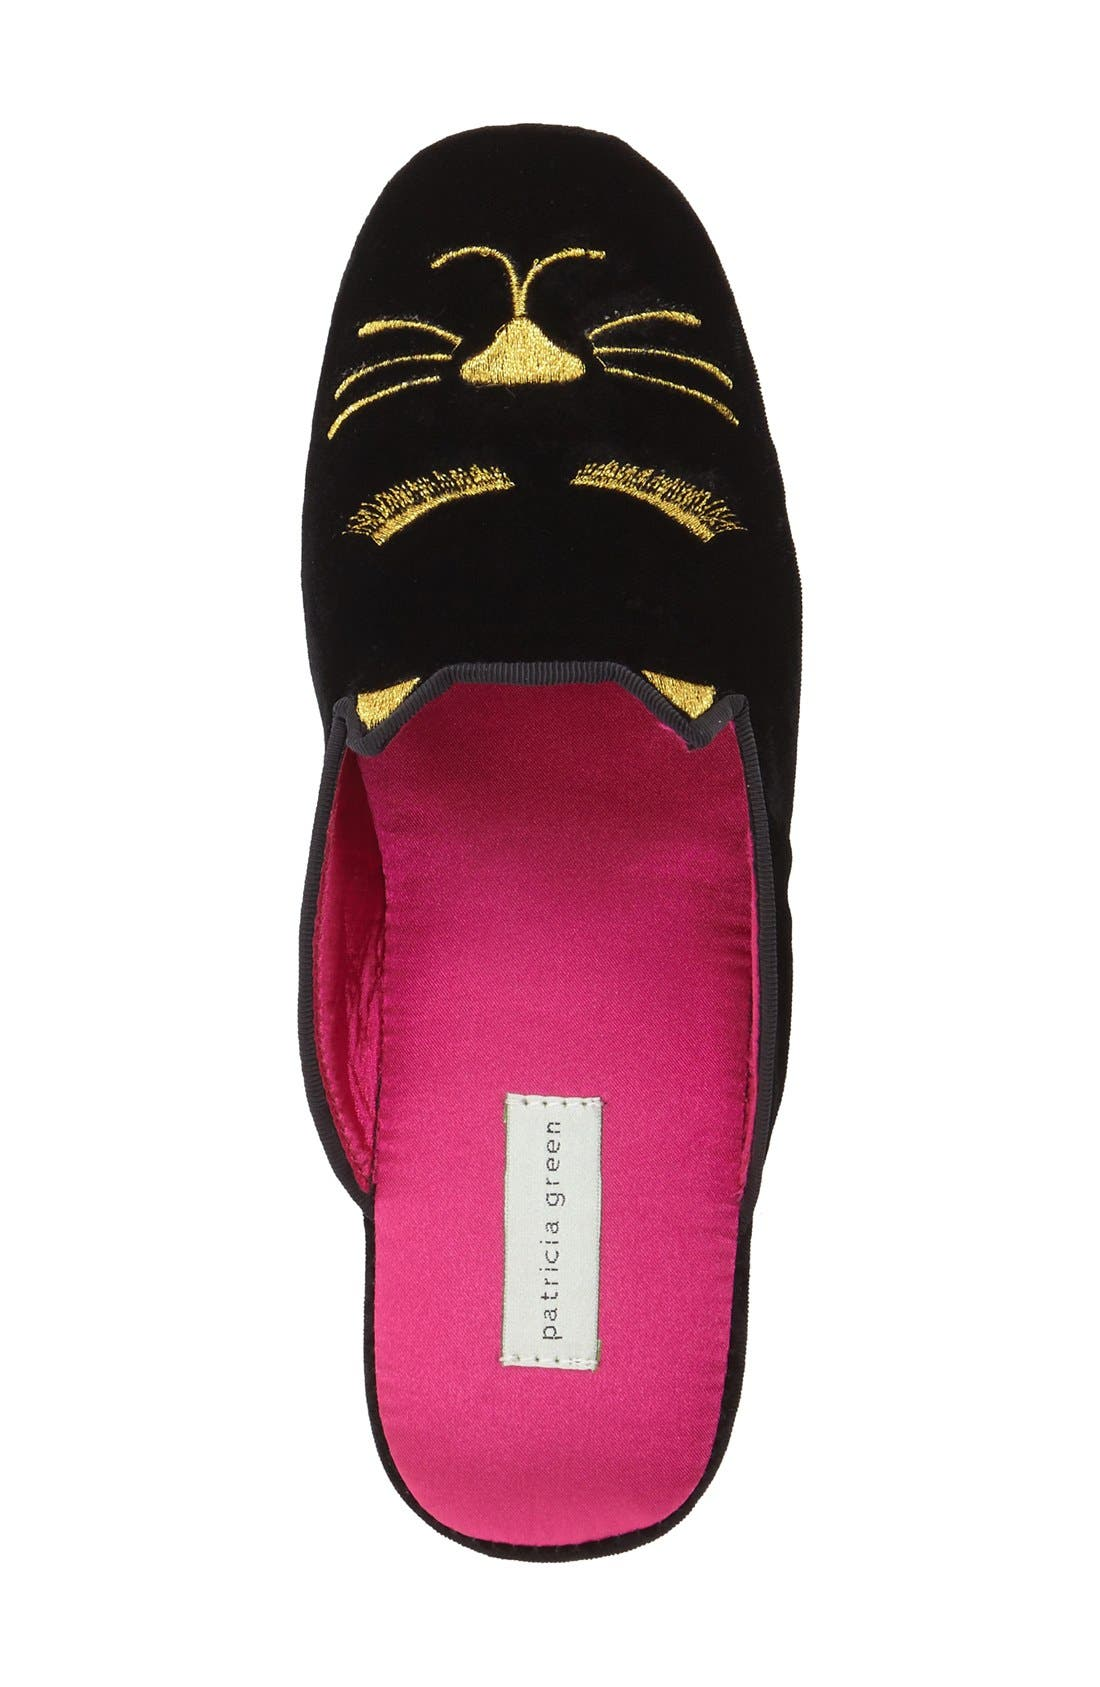 'Demure Kitty' Slipper,                             Alternate thumbnail 3, color,                             Black Velvet